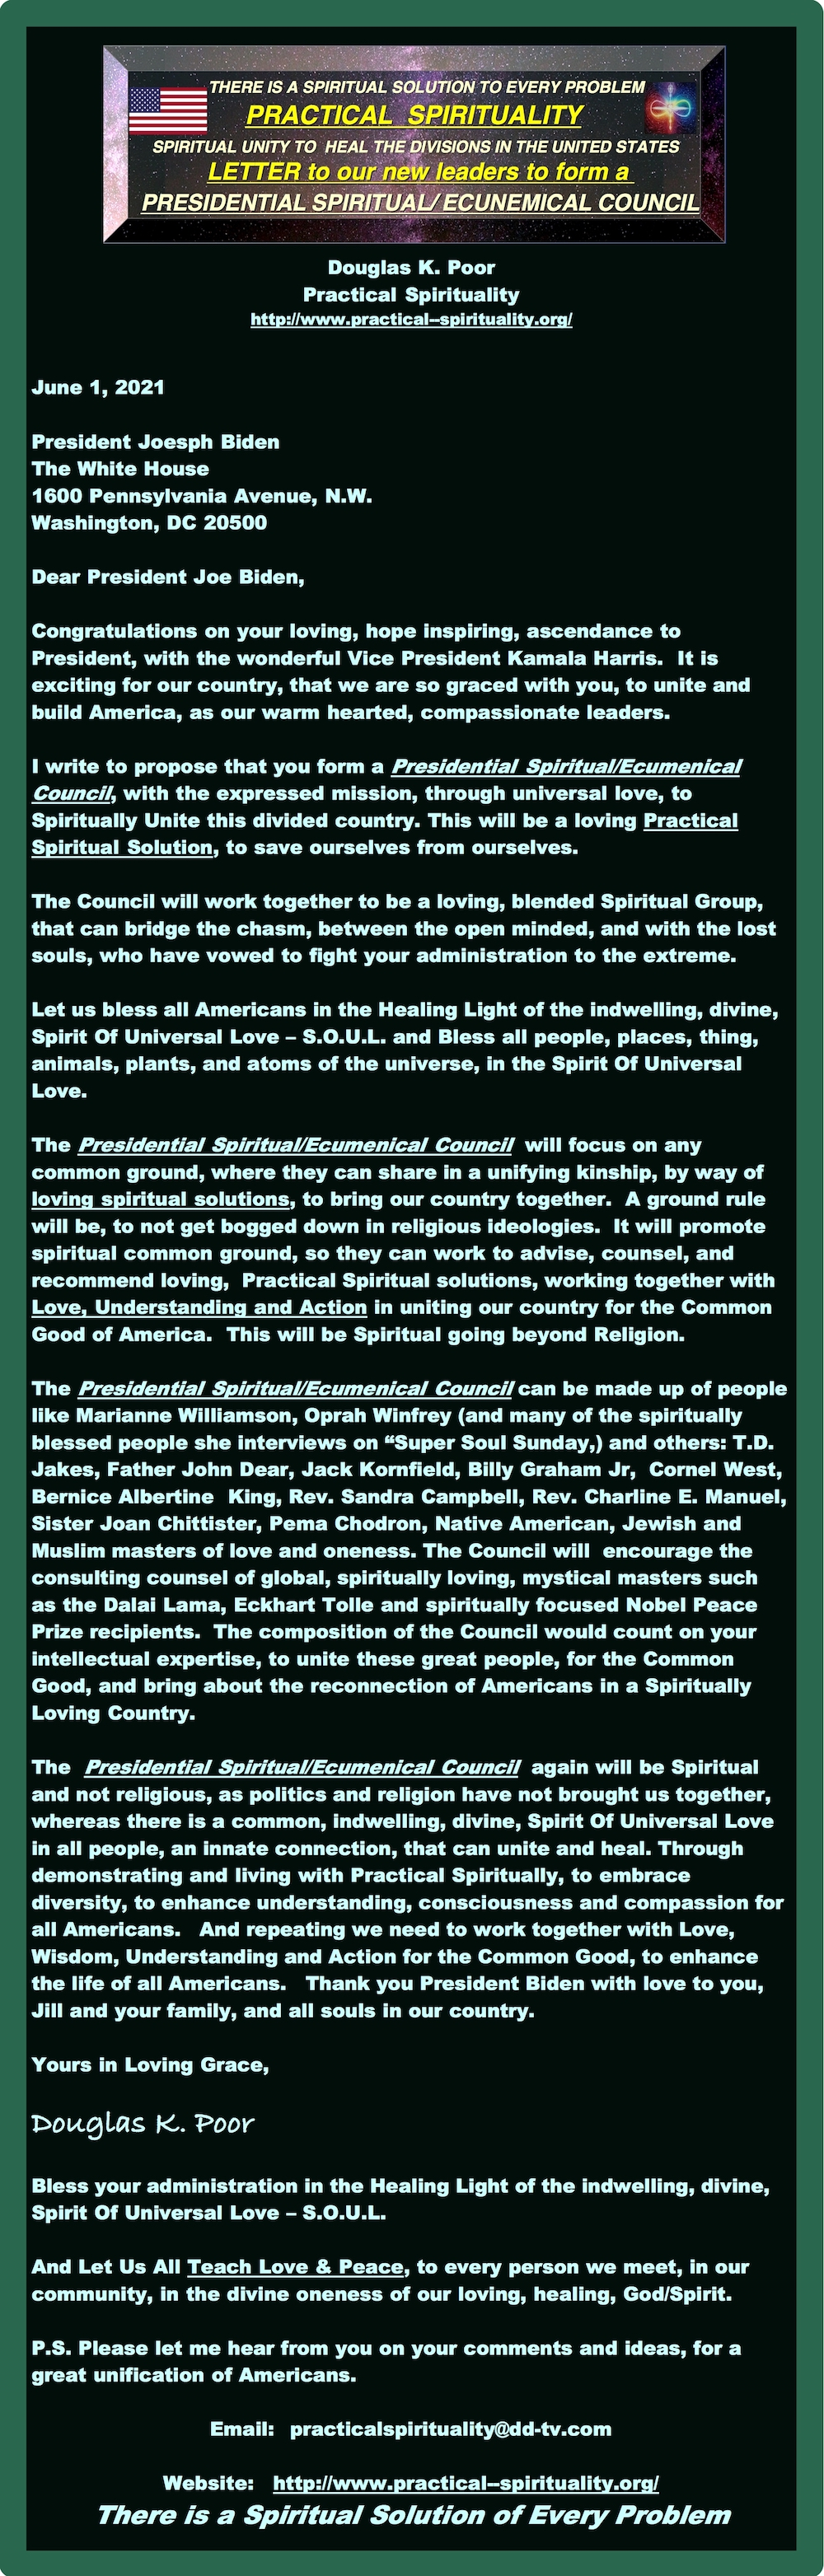 =========================================================LETTER-FOR-PRESIDENTIAL-SPIRITUAL-ECUNEMICAL-COUNCIL===============================================================LETTER-FOR-PRESIDENTIAL-SPIRITUAL-ECUNEMICAL-COUNCIL